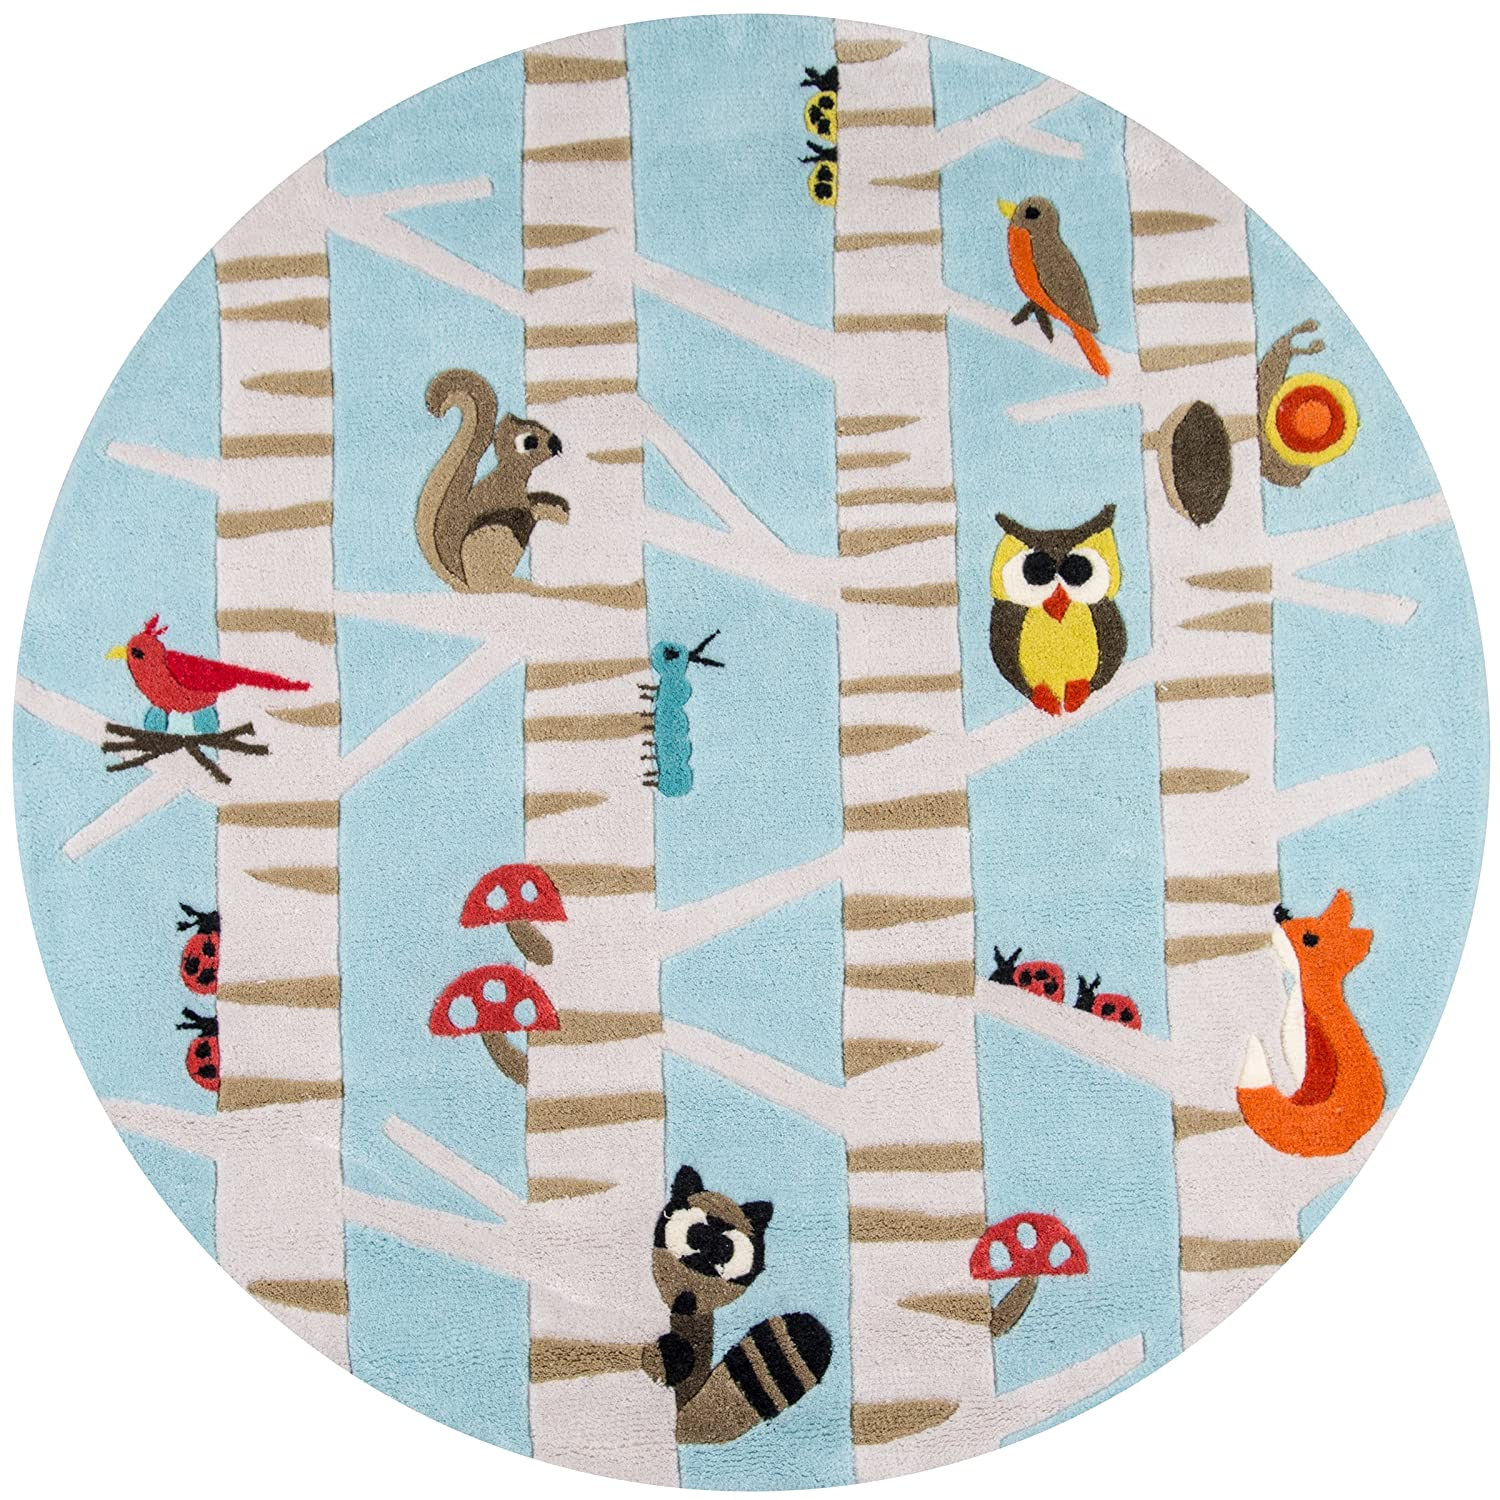 Light Blue 2/' x 3/' Inc. 2 x 3 Momeni Rugs LMOJULMJ29LBL2030 Lil Mo Whimsy Collection Kids Themed Hand Carved /& Tufted Area Rug